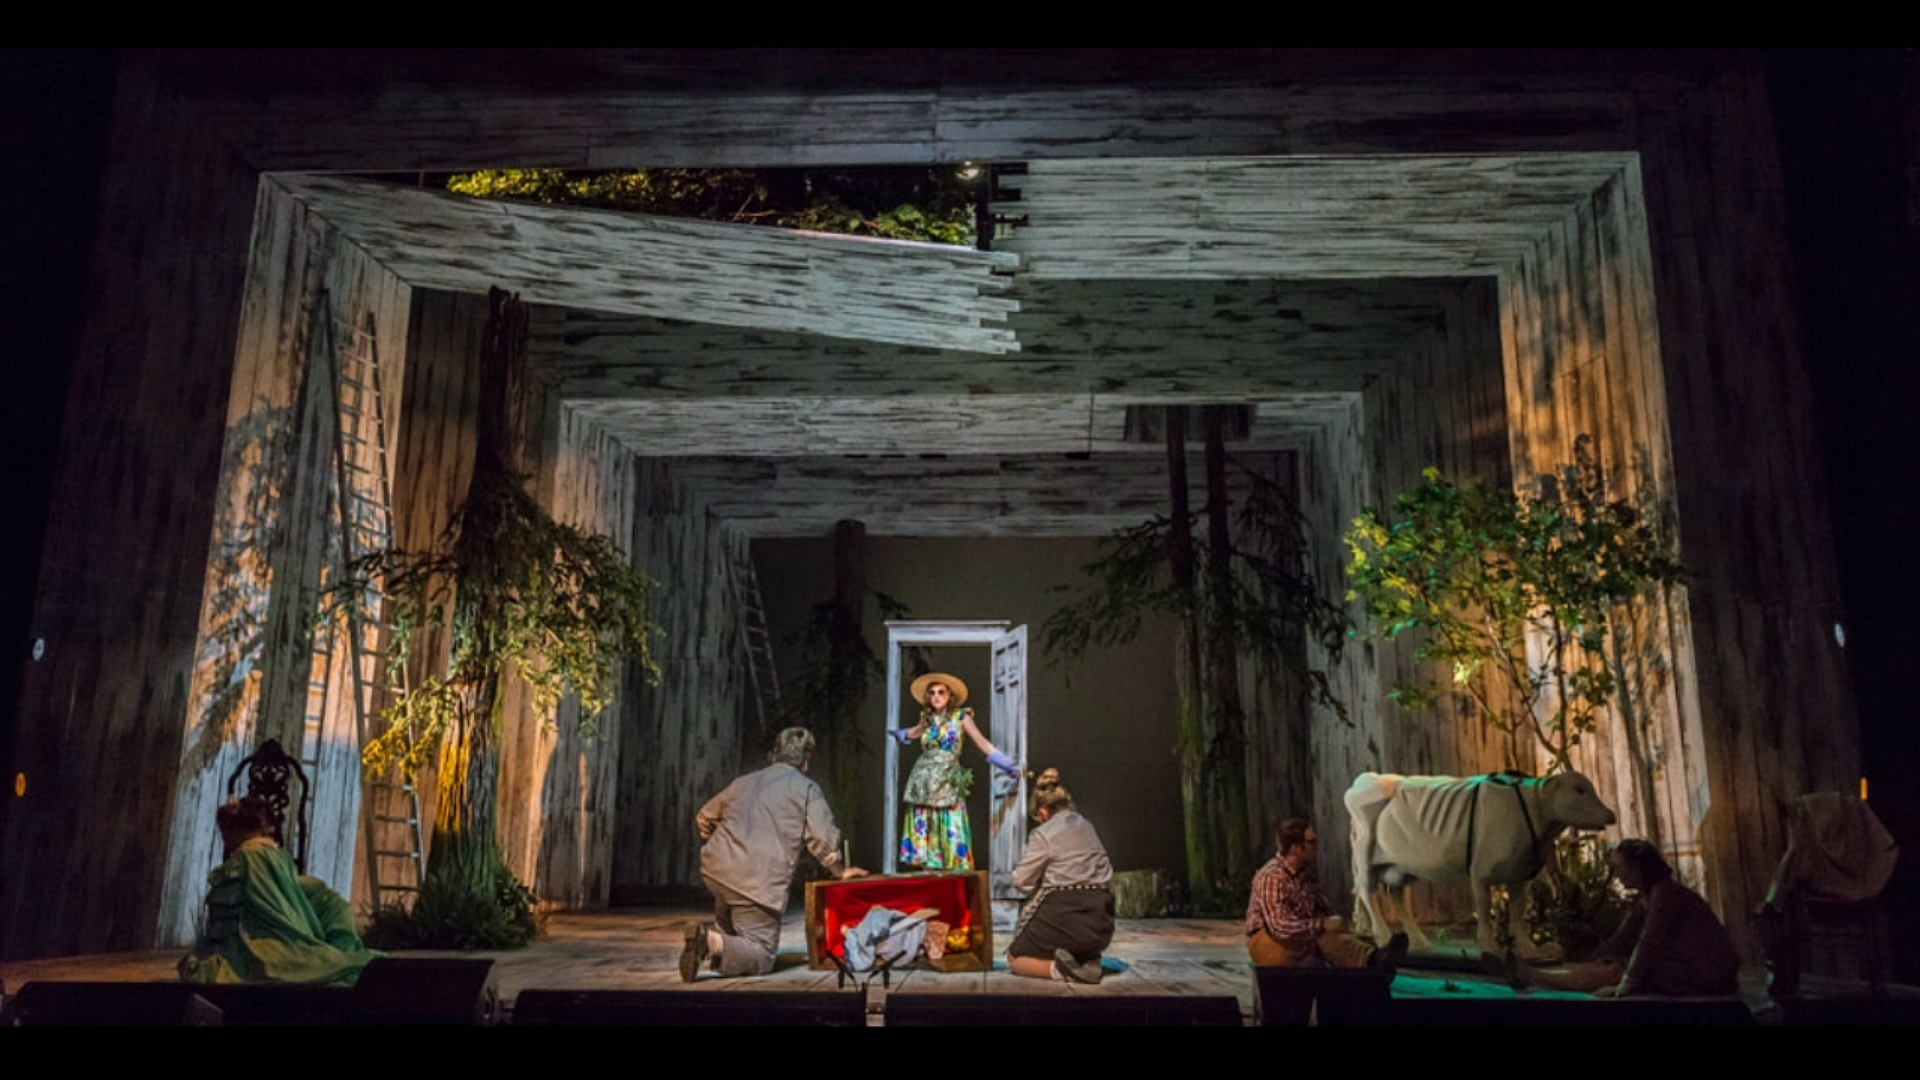 Into The Woods - lighting & projections